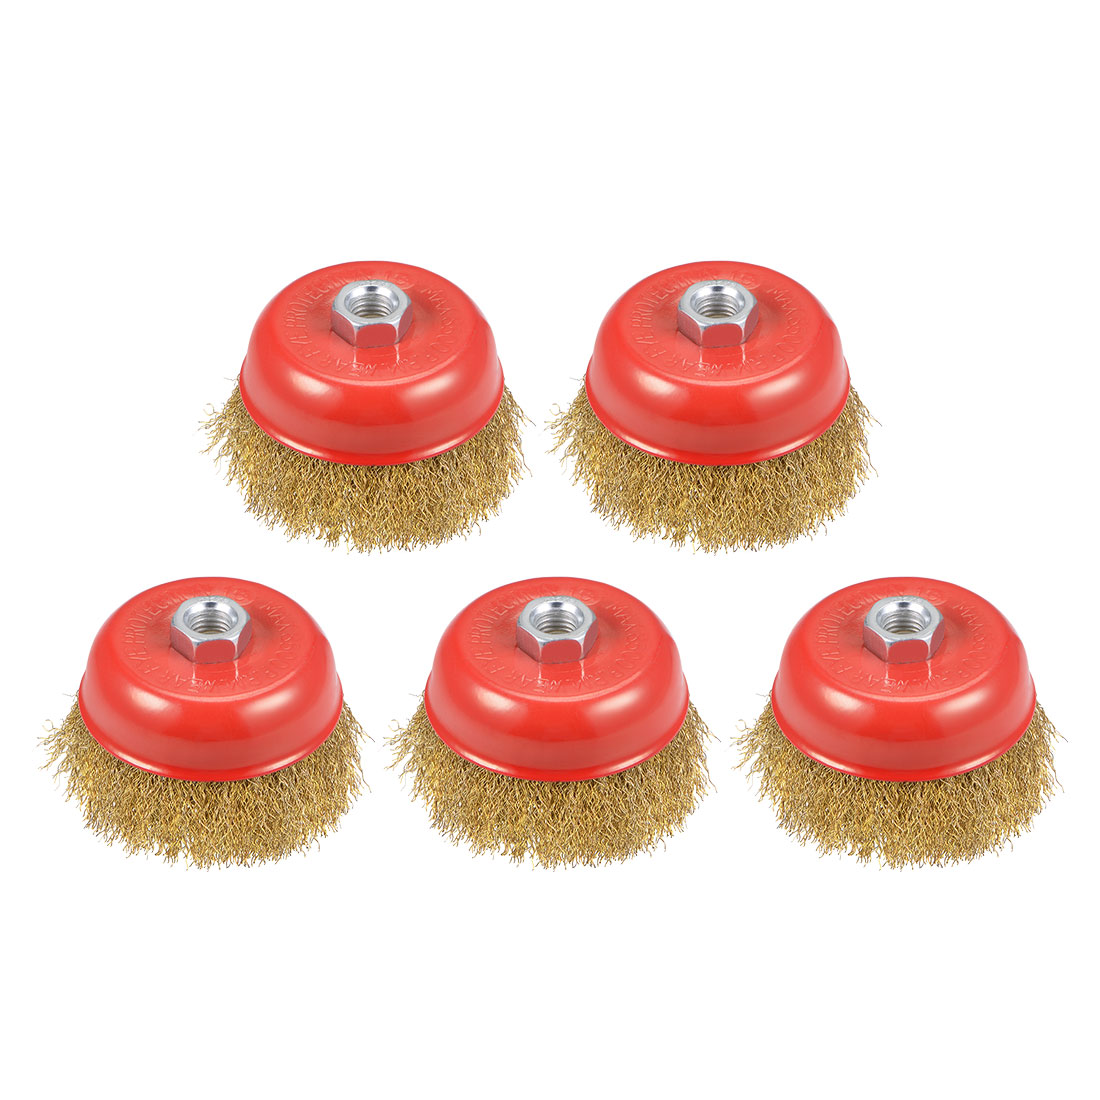 4-Inch Wire Cup Brush Brass Plated Crimped Steel with M14 Threaded Hole 5 Pcs